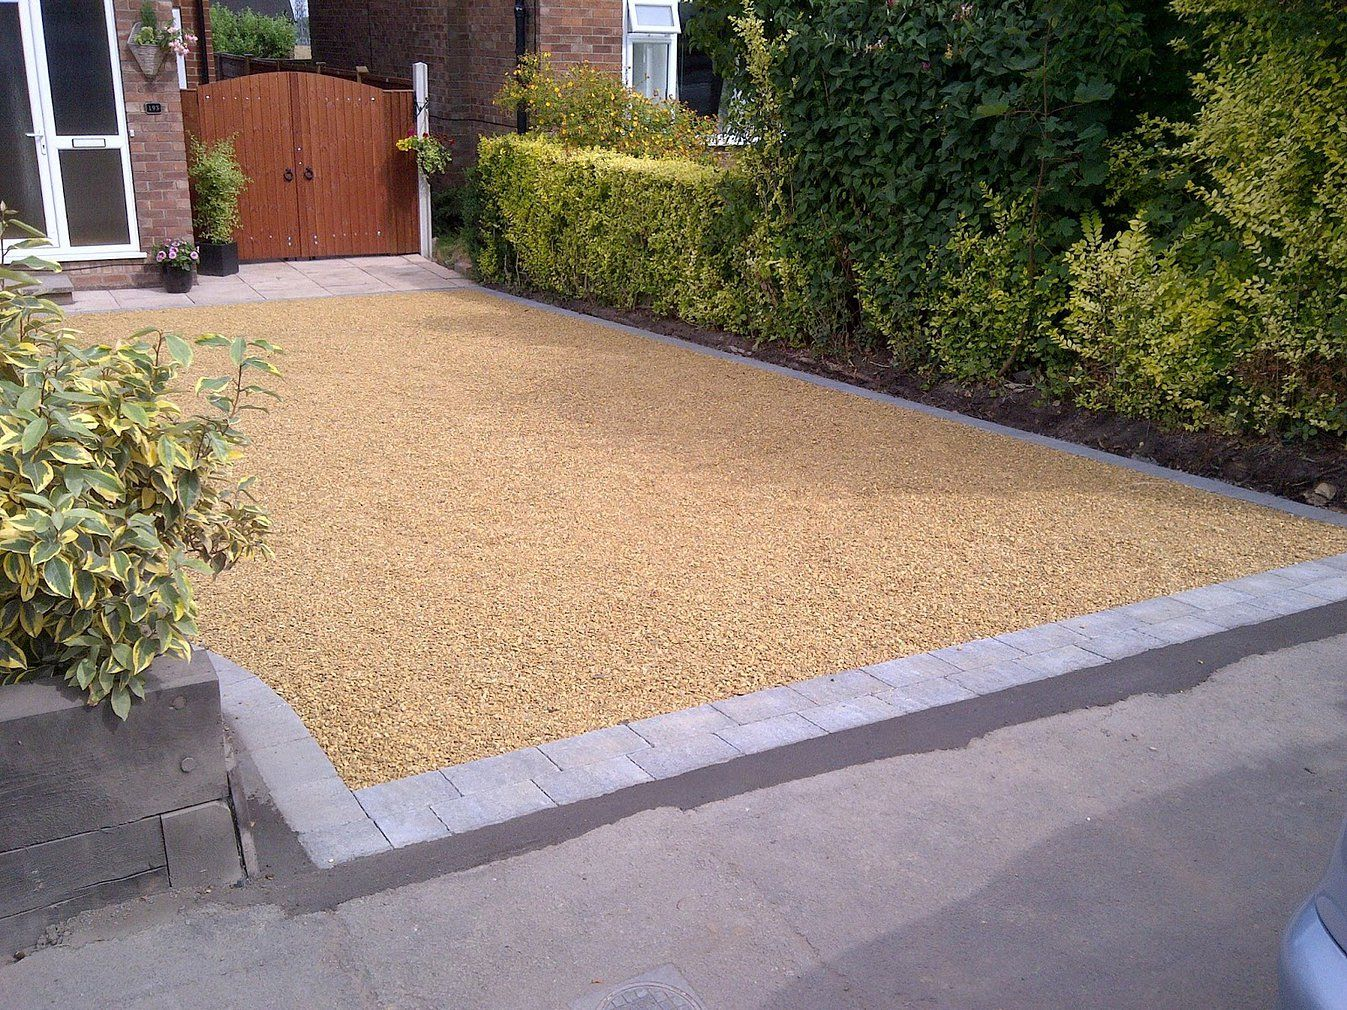 Gravel driveway with block paving edging or border drive for Gravel path edging ideas